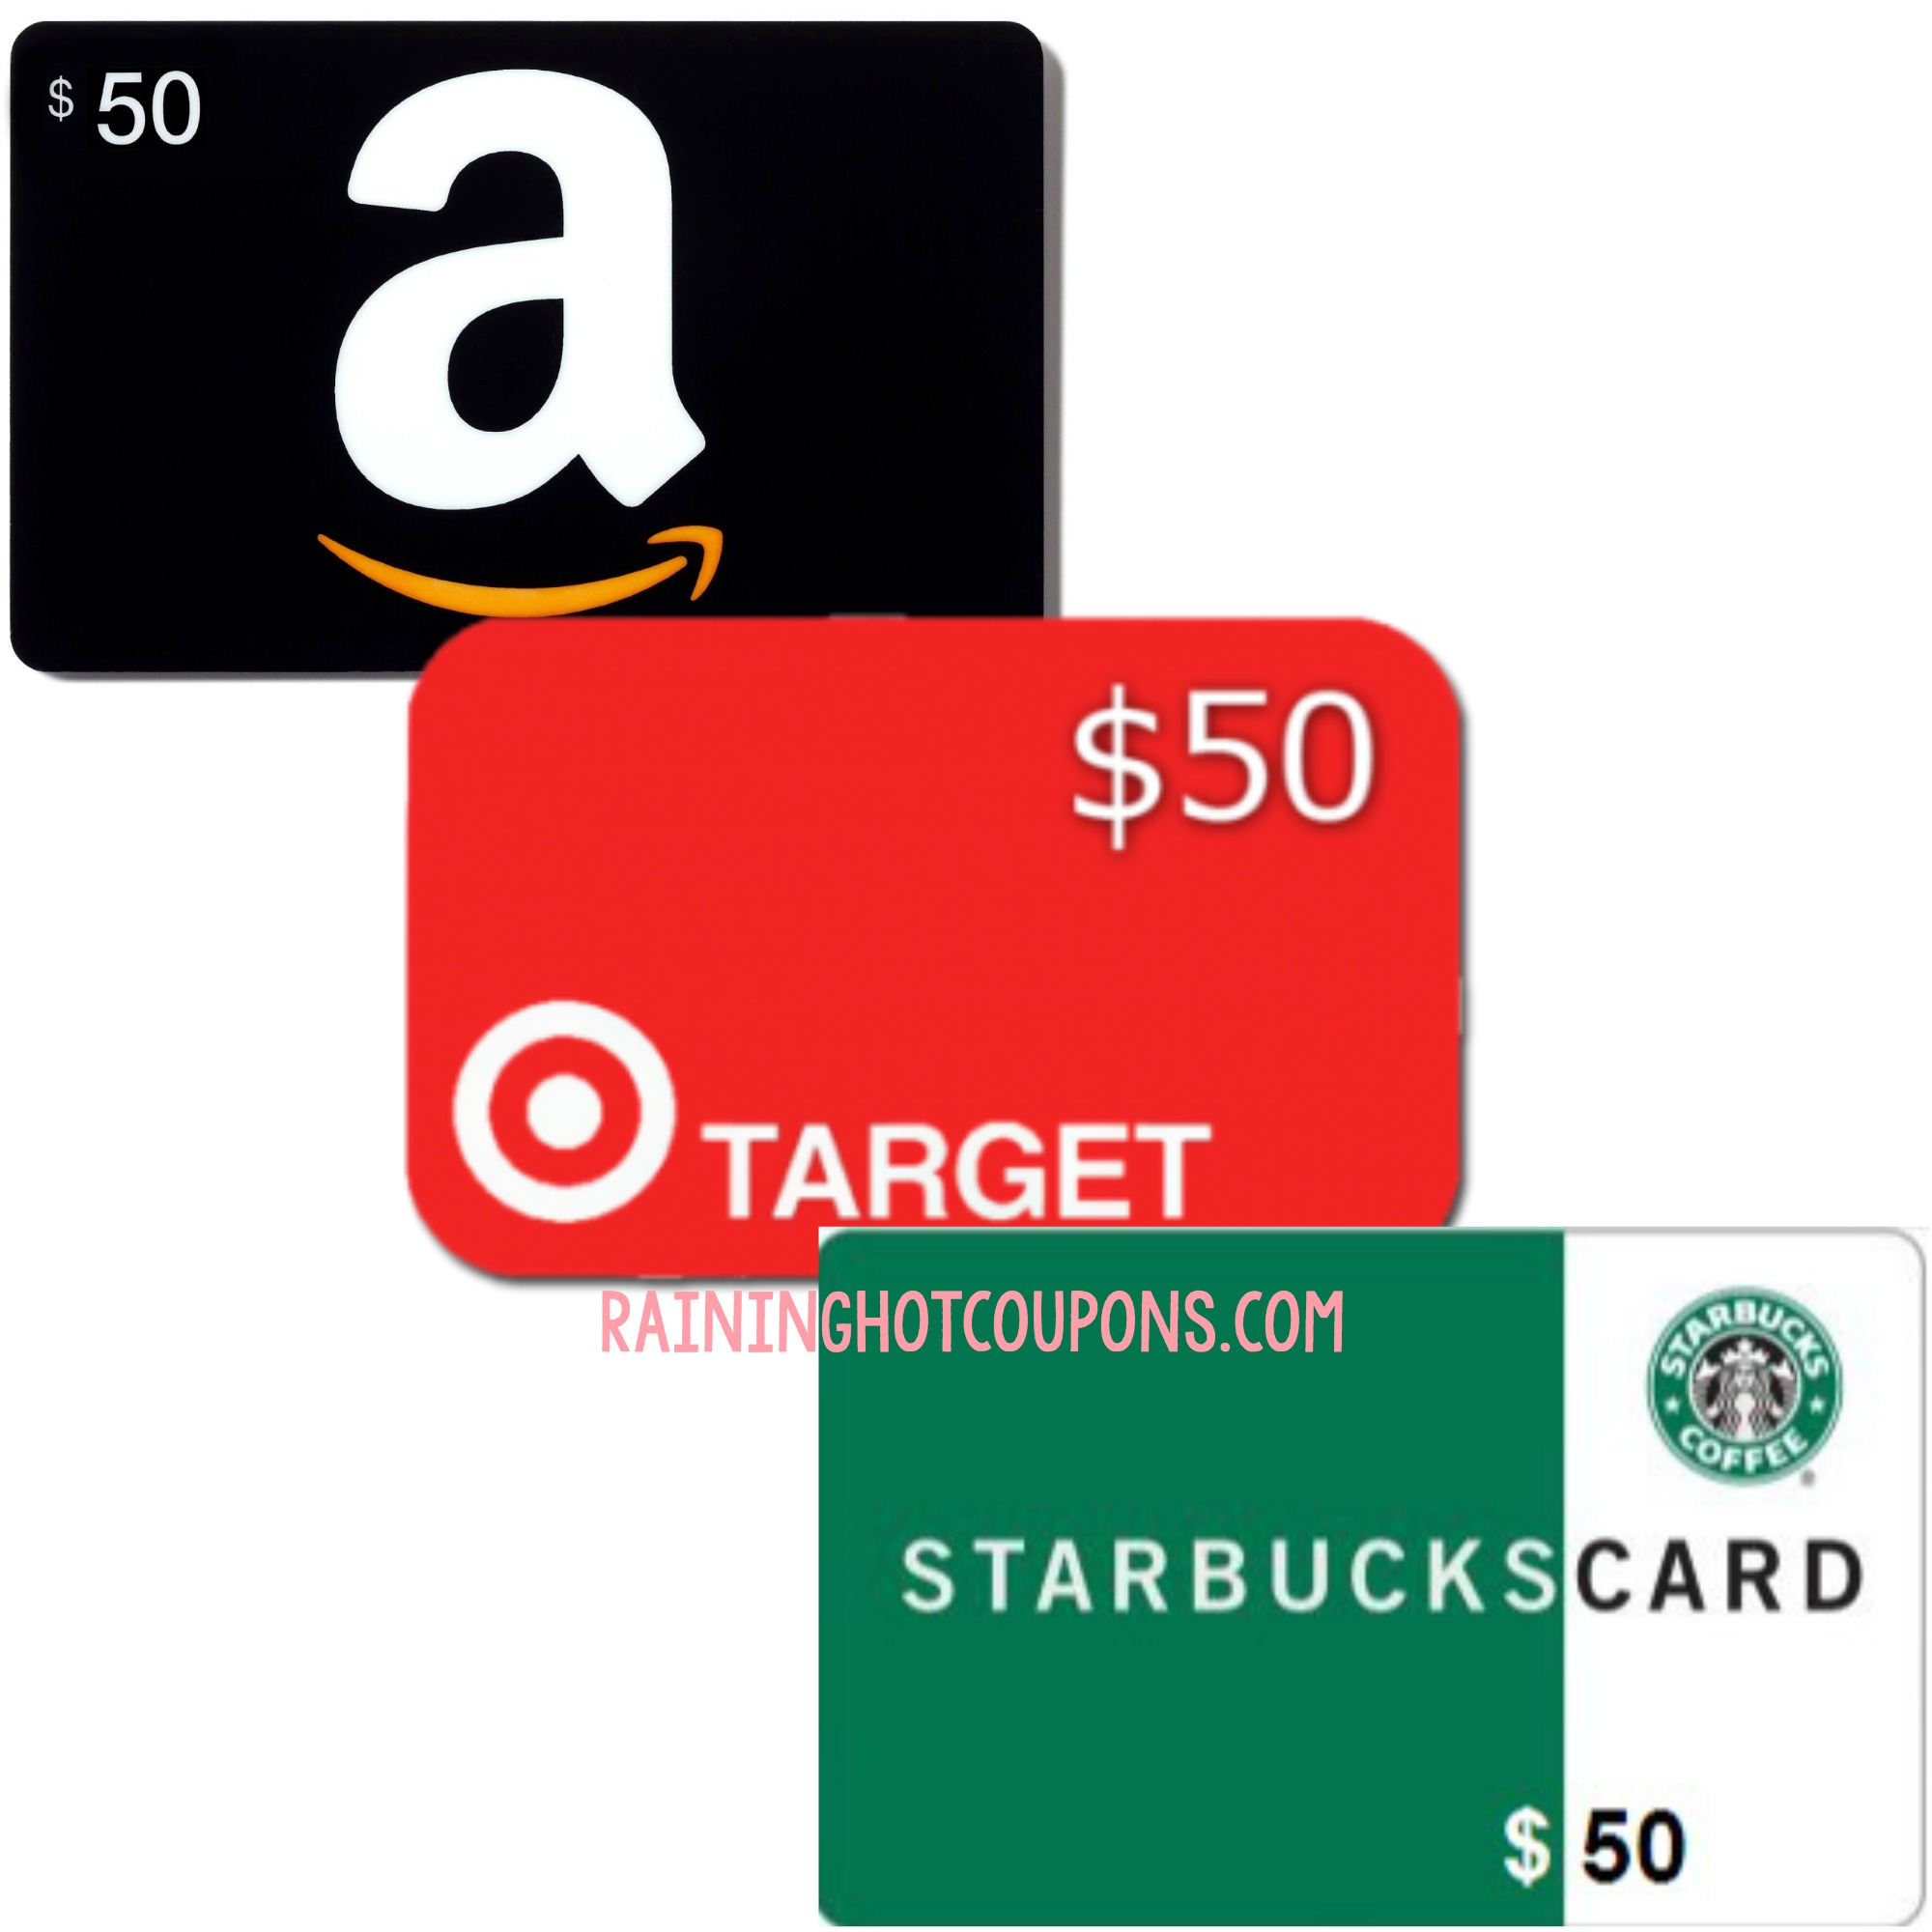 I Am Giving One Of YOU A $50 Gift Card To Amazon, Target